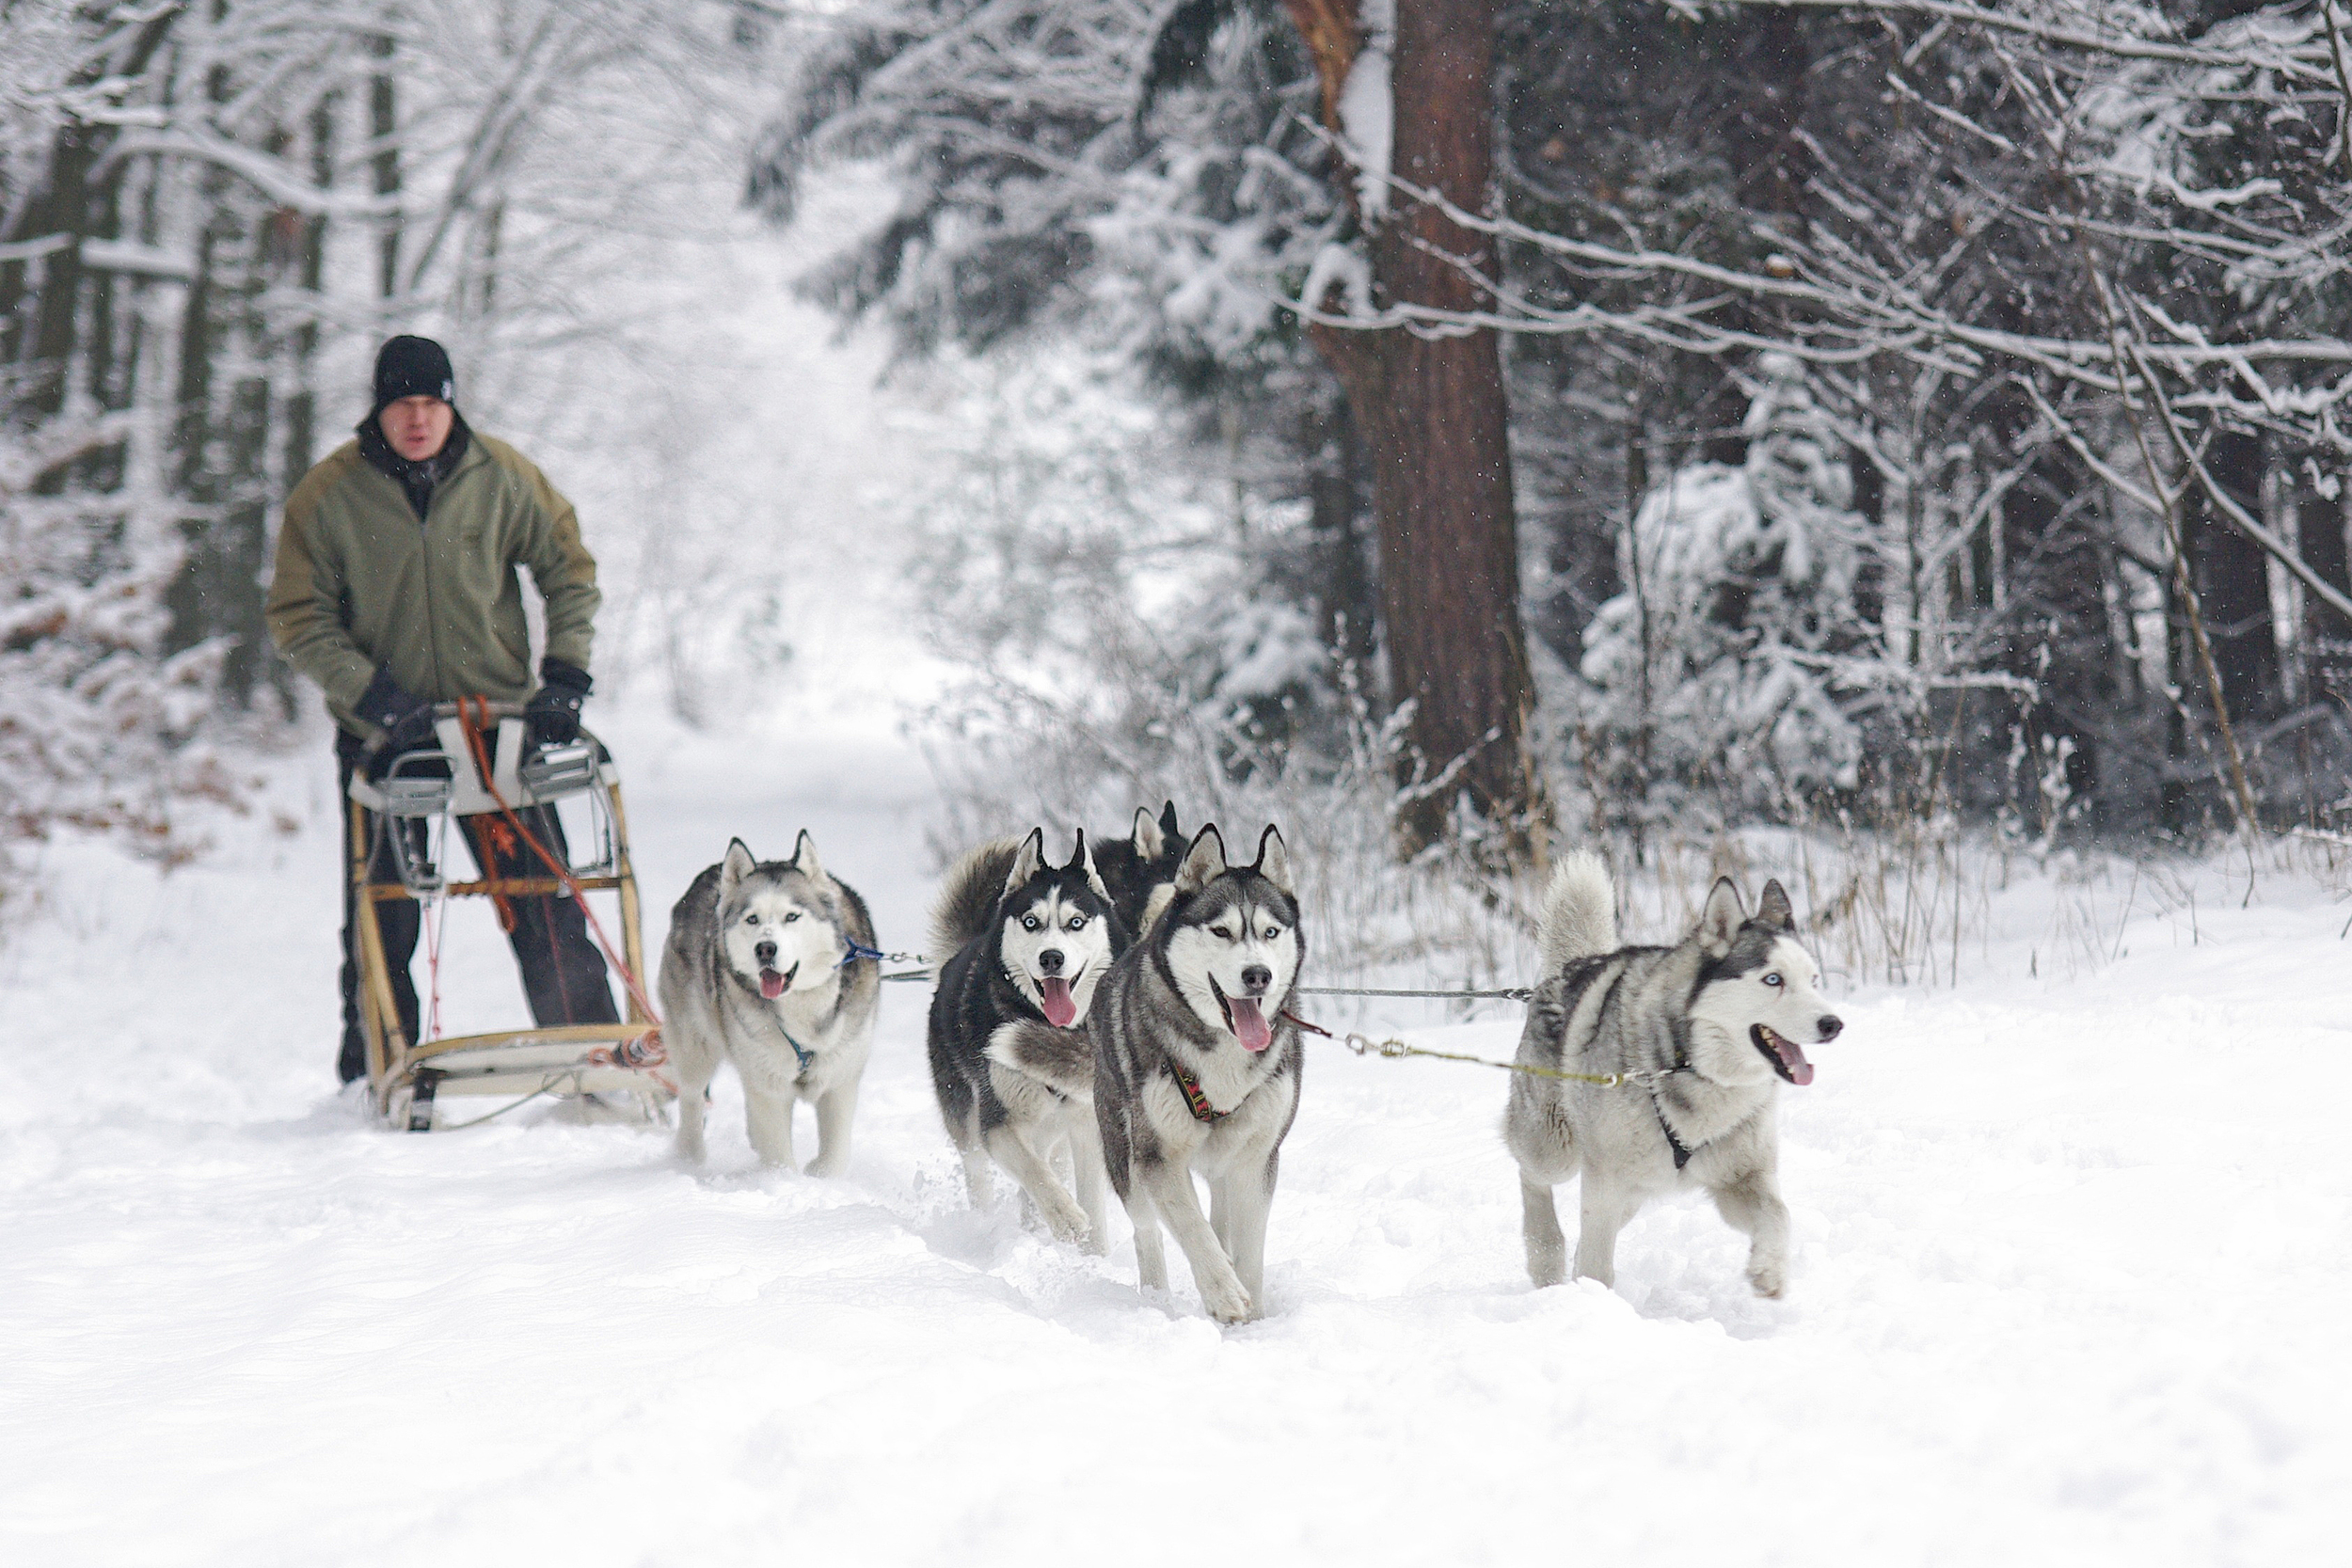 4 husky dogs drag a man on a sled